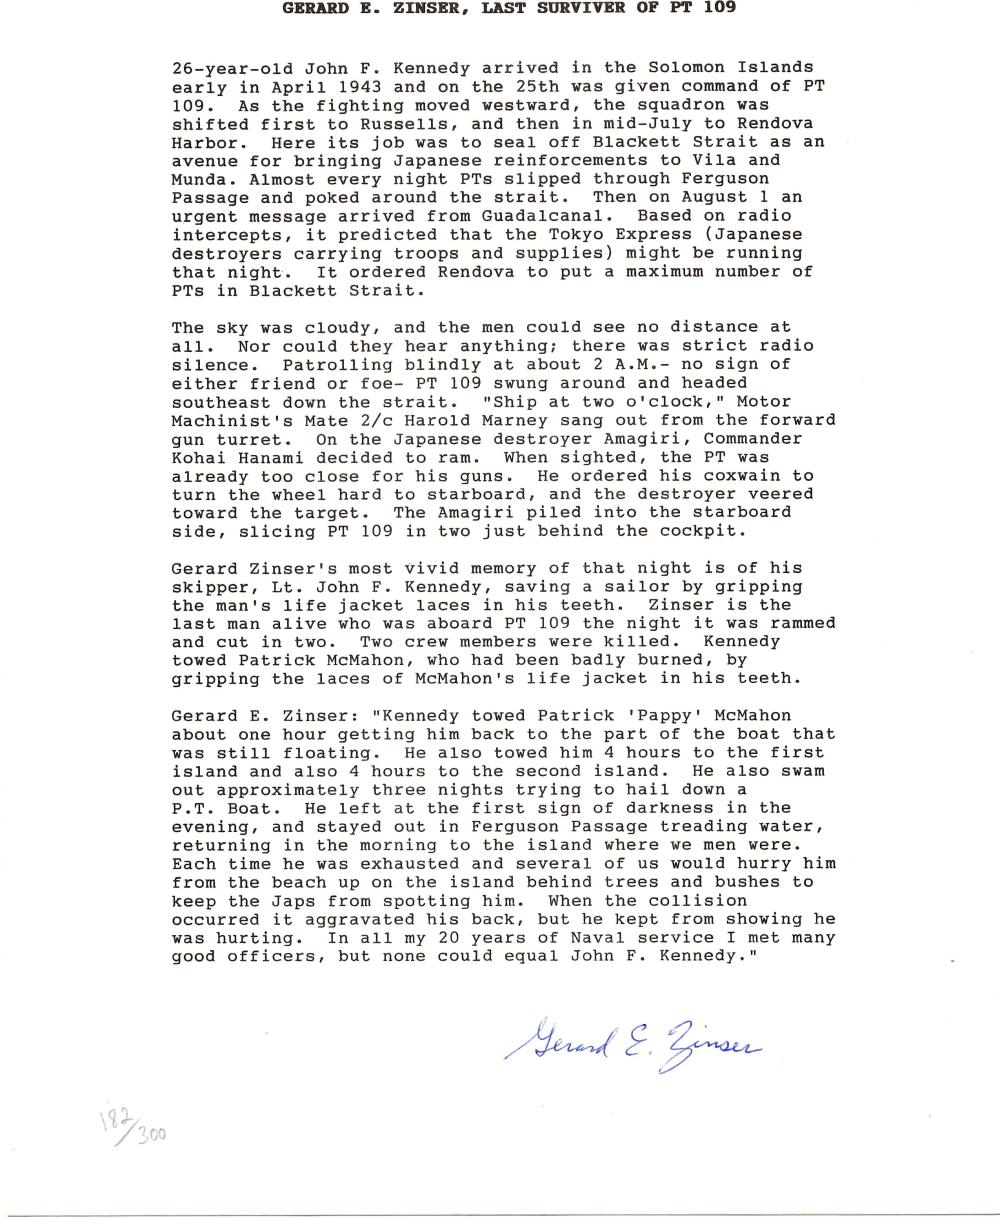 Two Letters Regarding JFK and His Service on PT 109